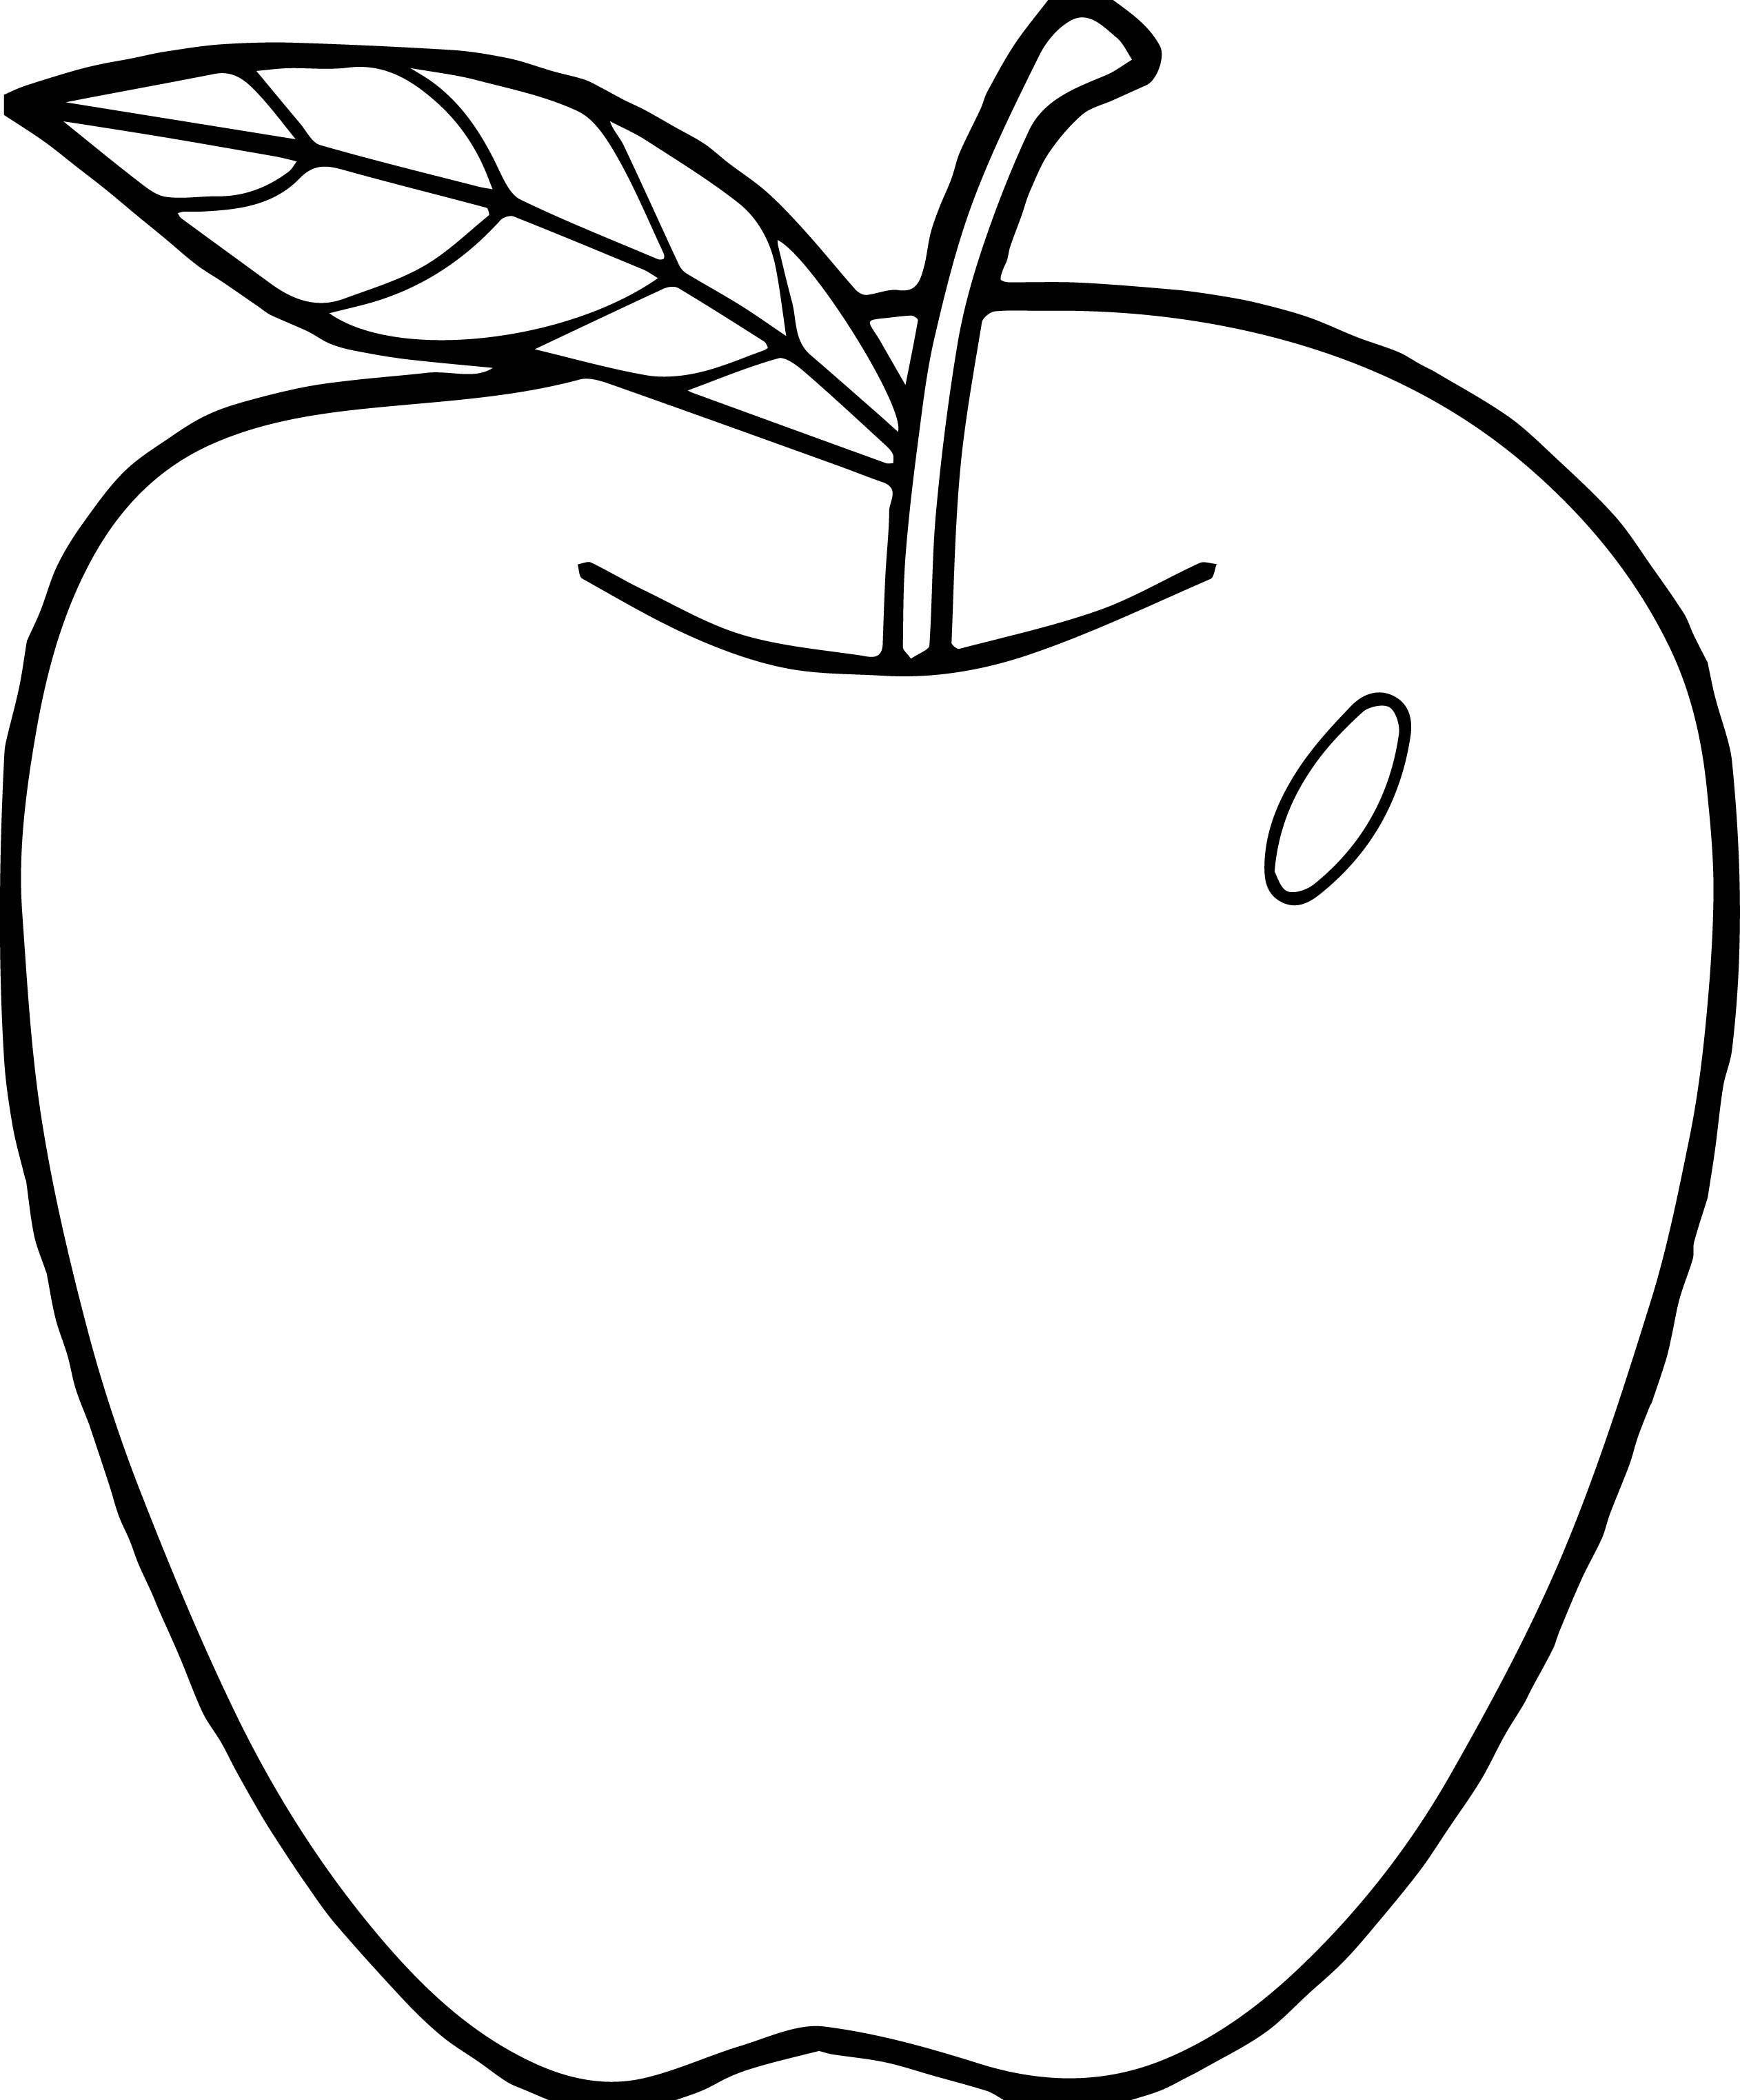 Parts Of An Apple Coloring Pages Nomenclature Cards_apple Parts Coloring Page on Freebie Parts Of Apple